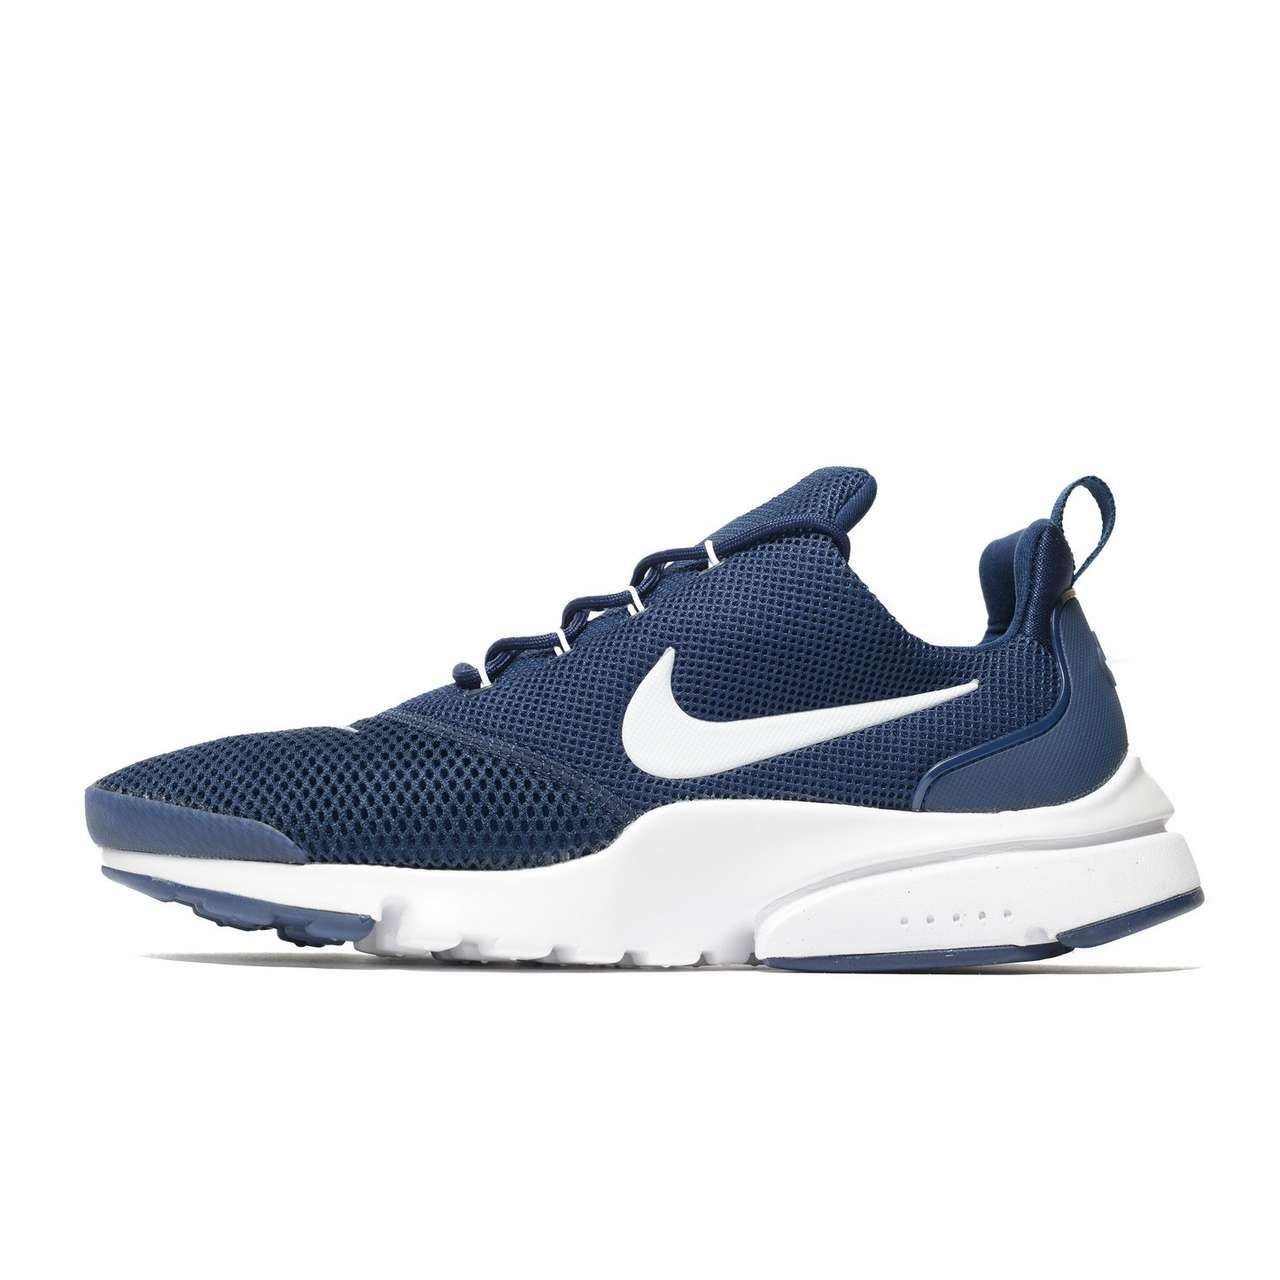 Nike Air Presto Fly - Shop online for Nike Air Presto Fly with JD Sports,  the UK's leading sports fashion retailer.